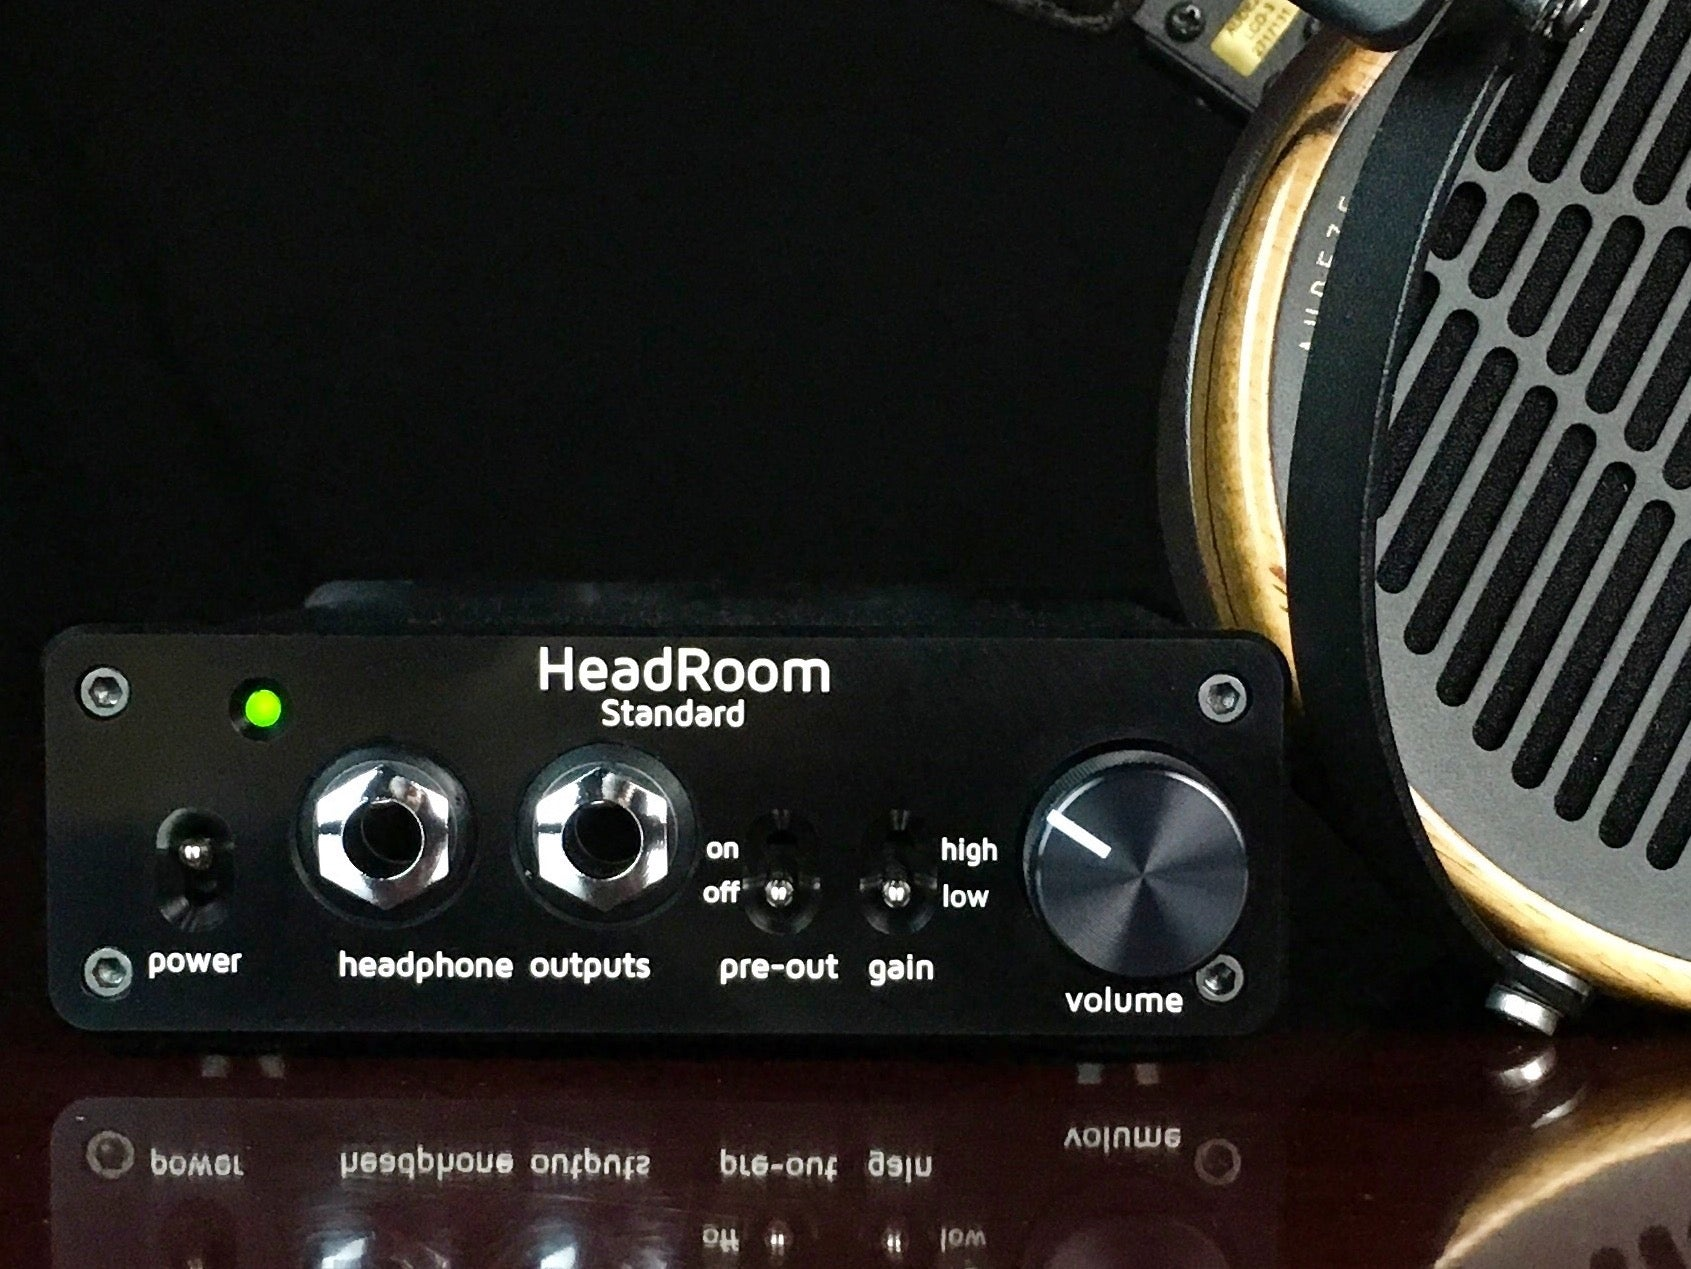 HeadRoom Standard Amp